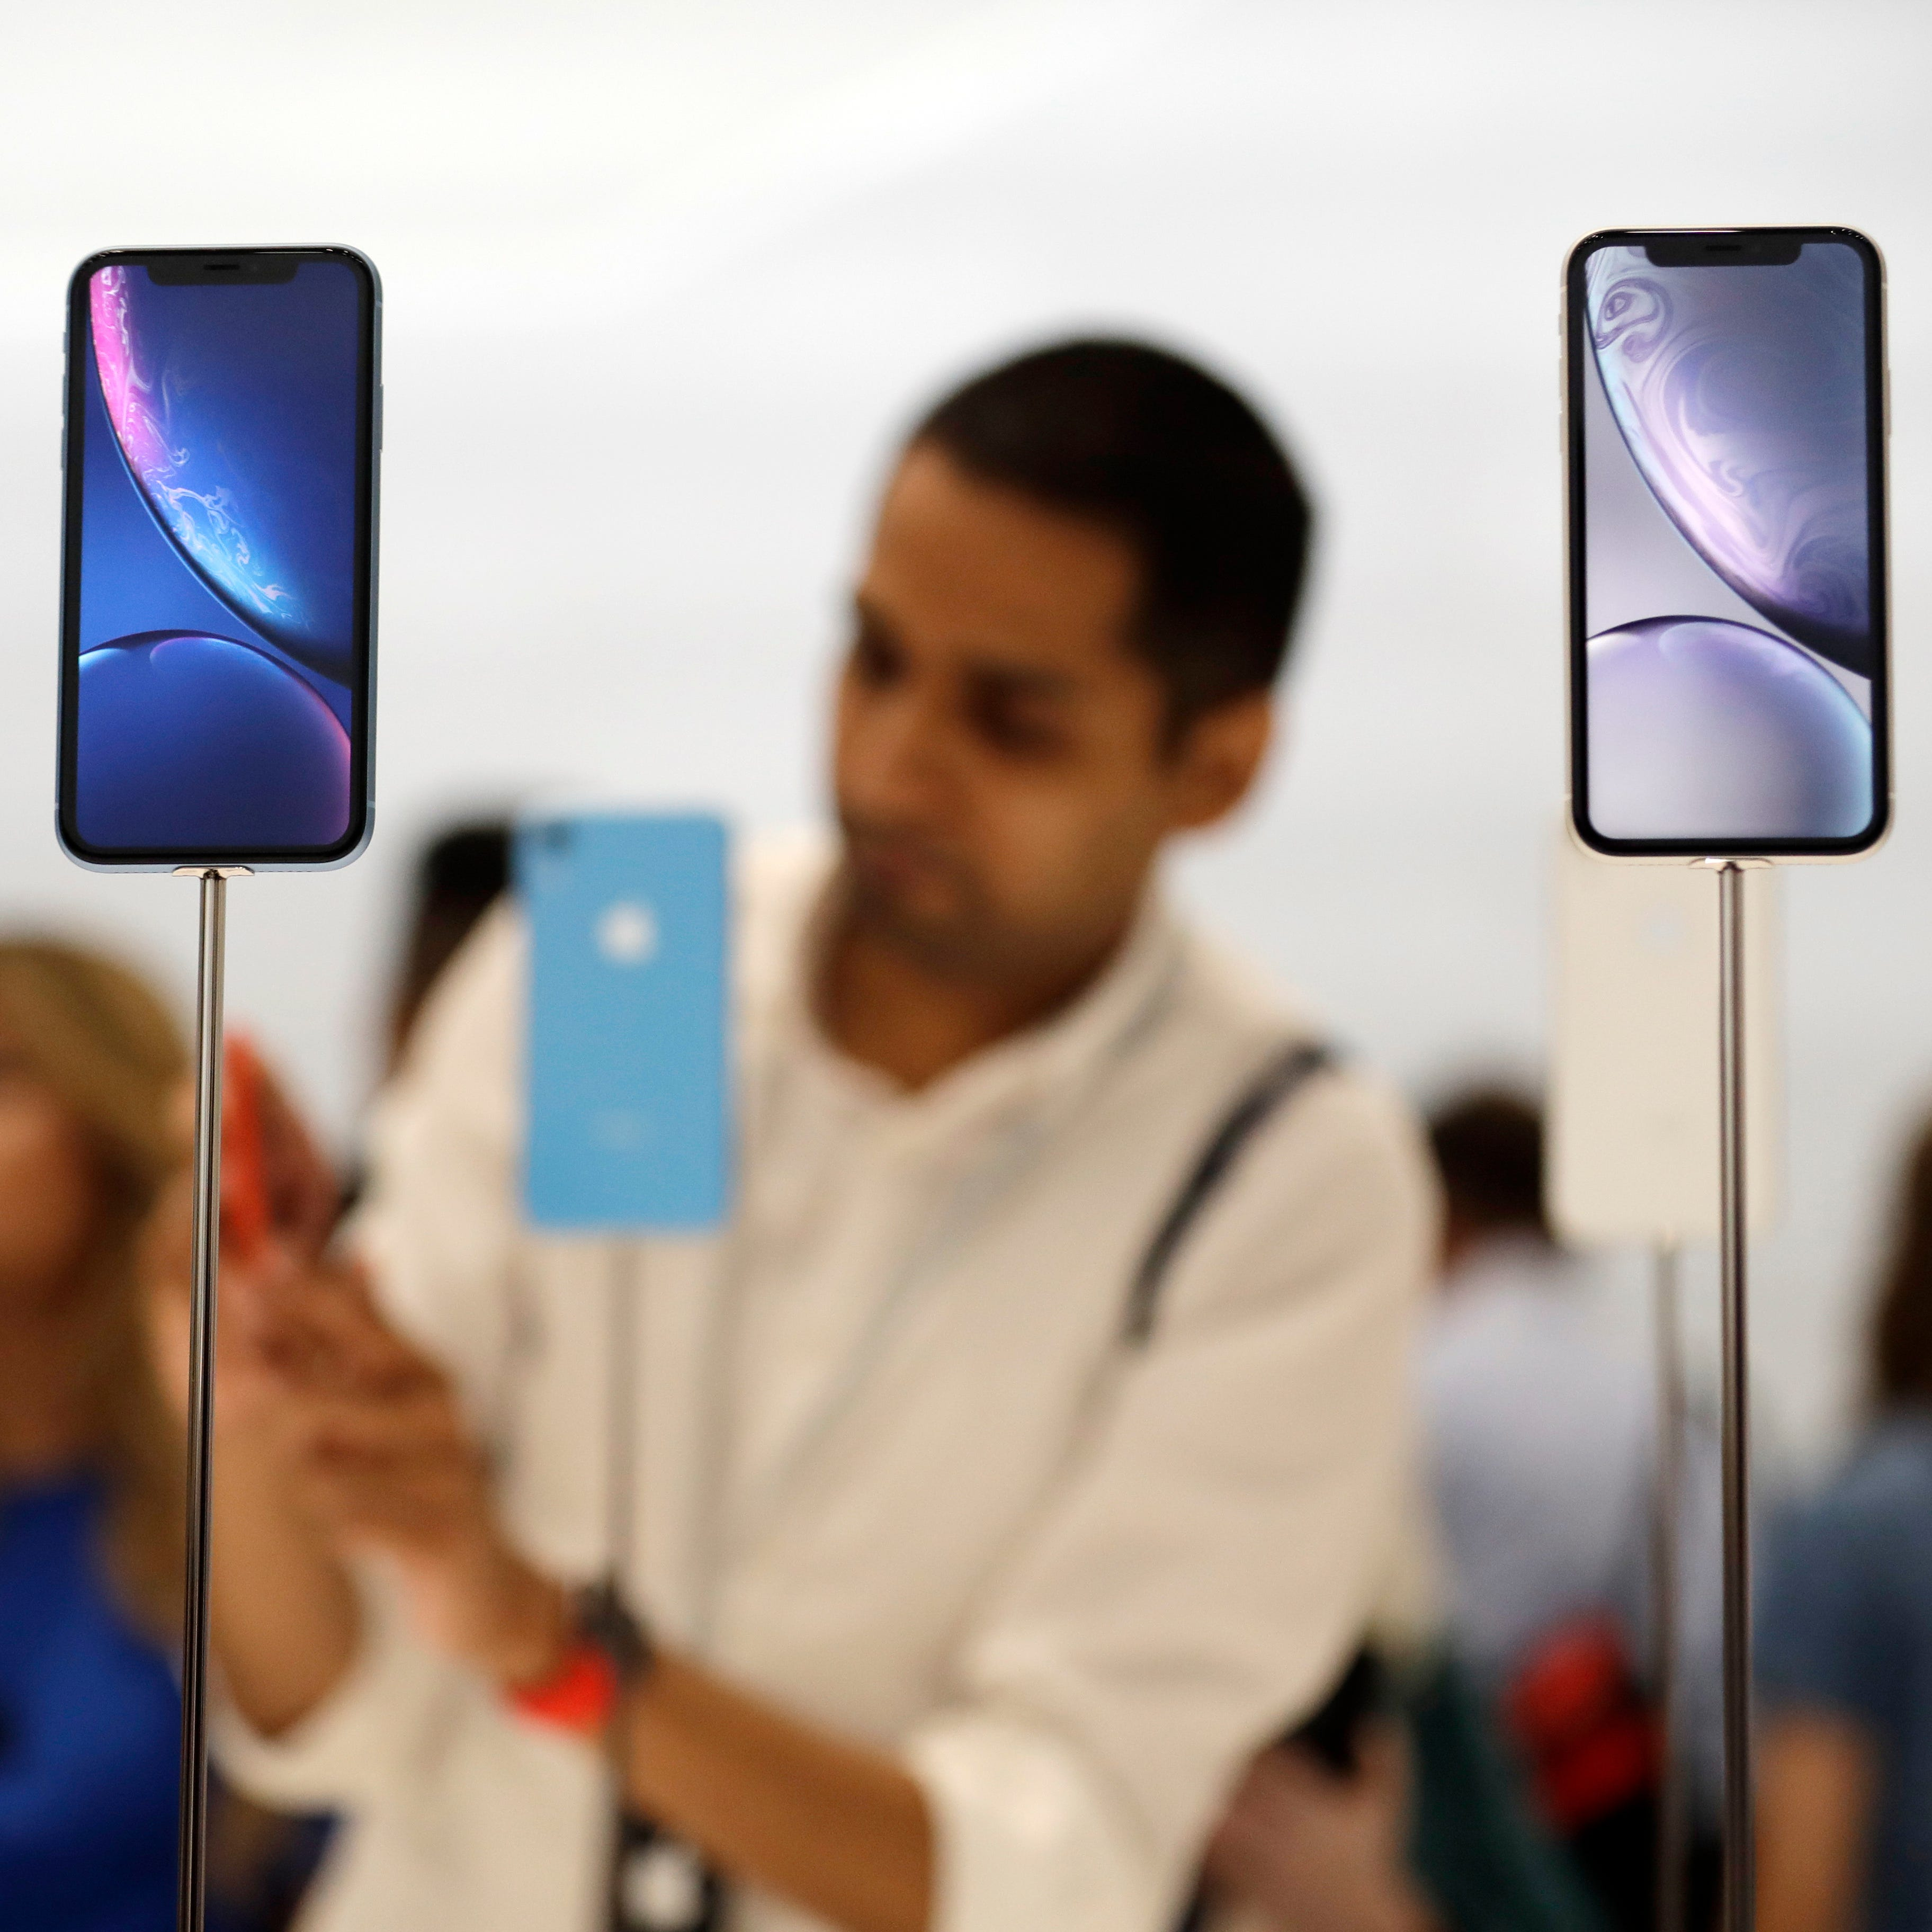 Apple's cheaper iPhone XR is now available for pre-order